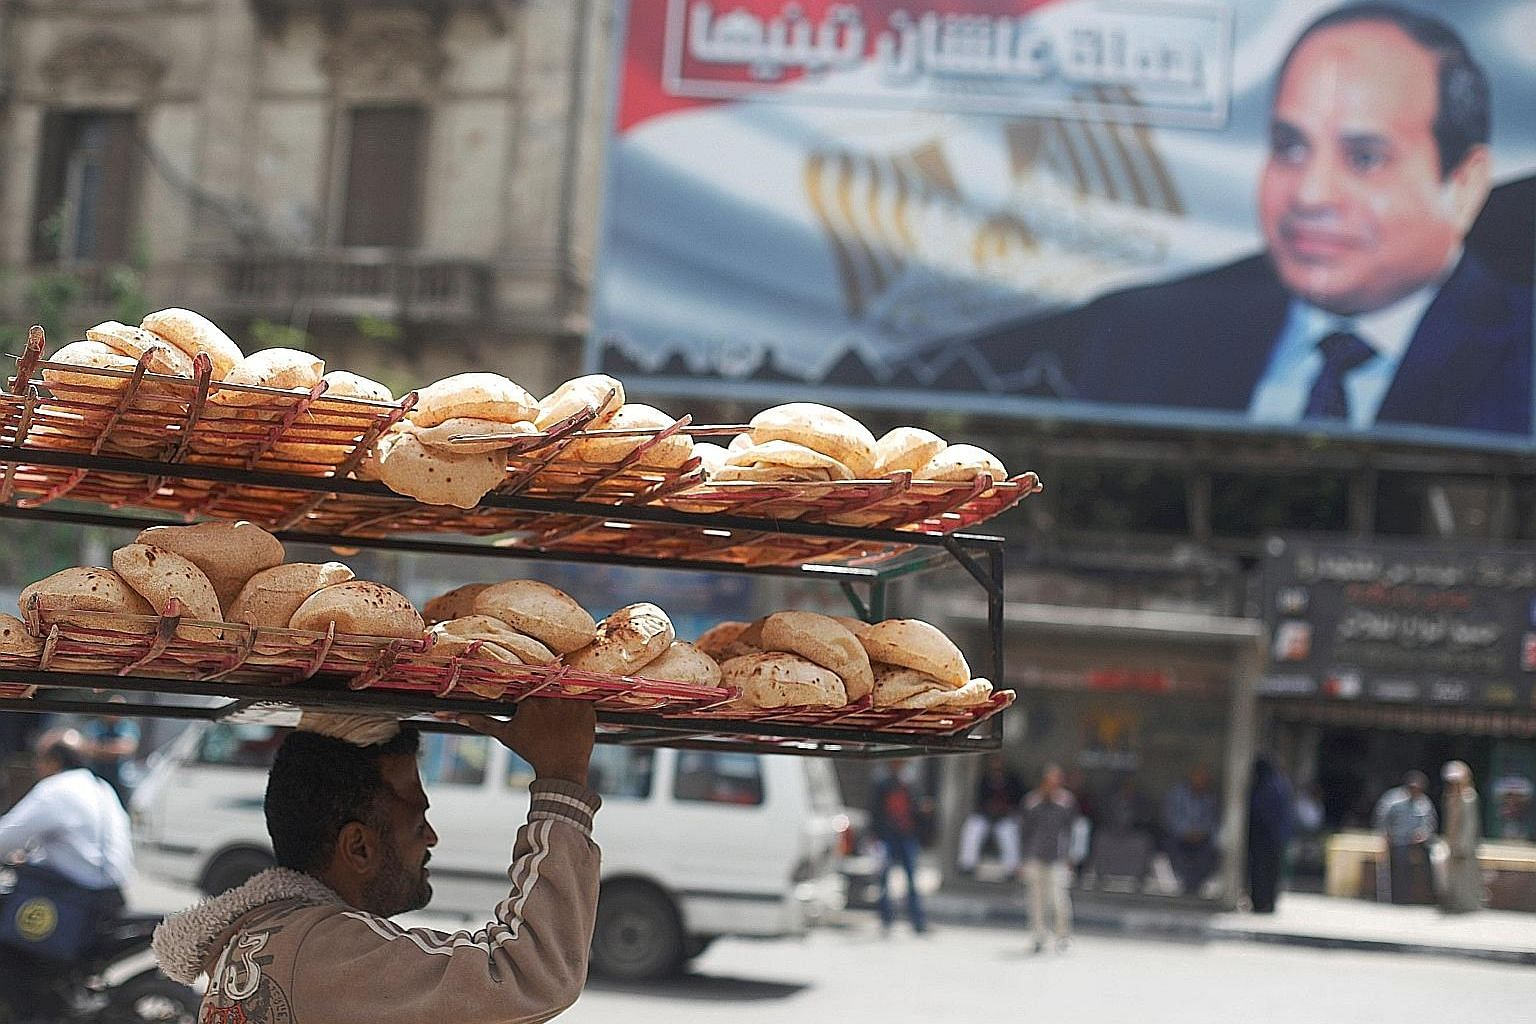 A bread seller walking past a banner featuring President Abdel Fattah el-Sisi. Egypt has seen a significant hike in inflation and a decline in purchasing power and living standards.